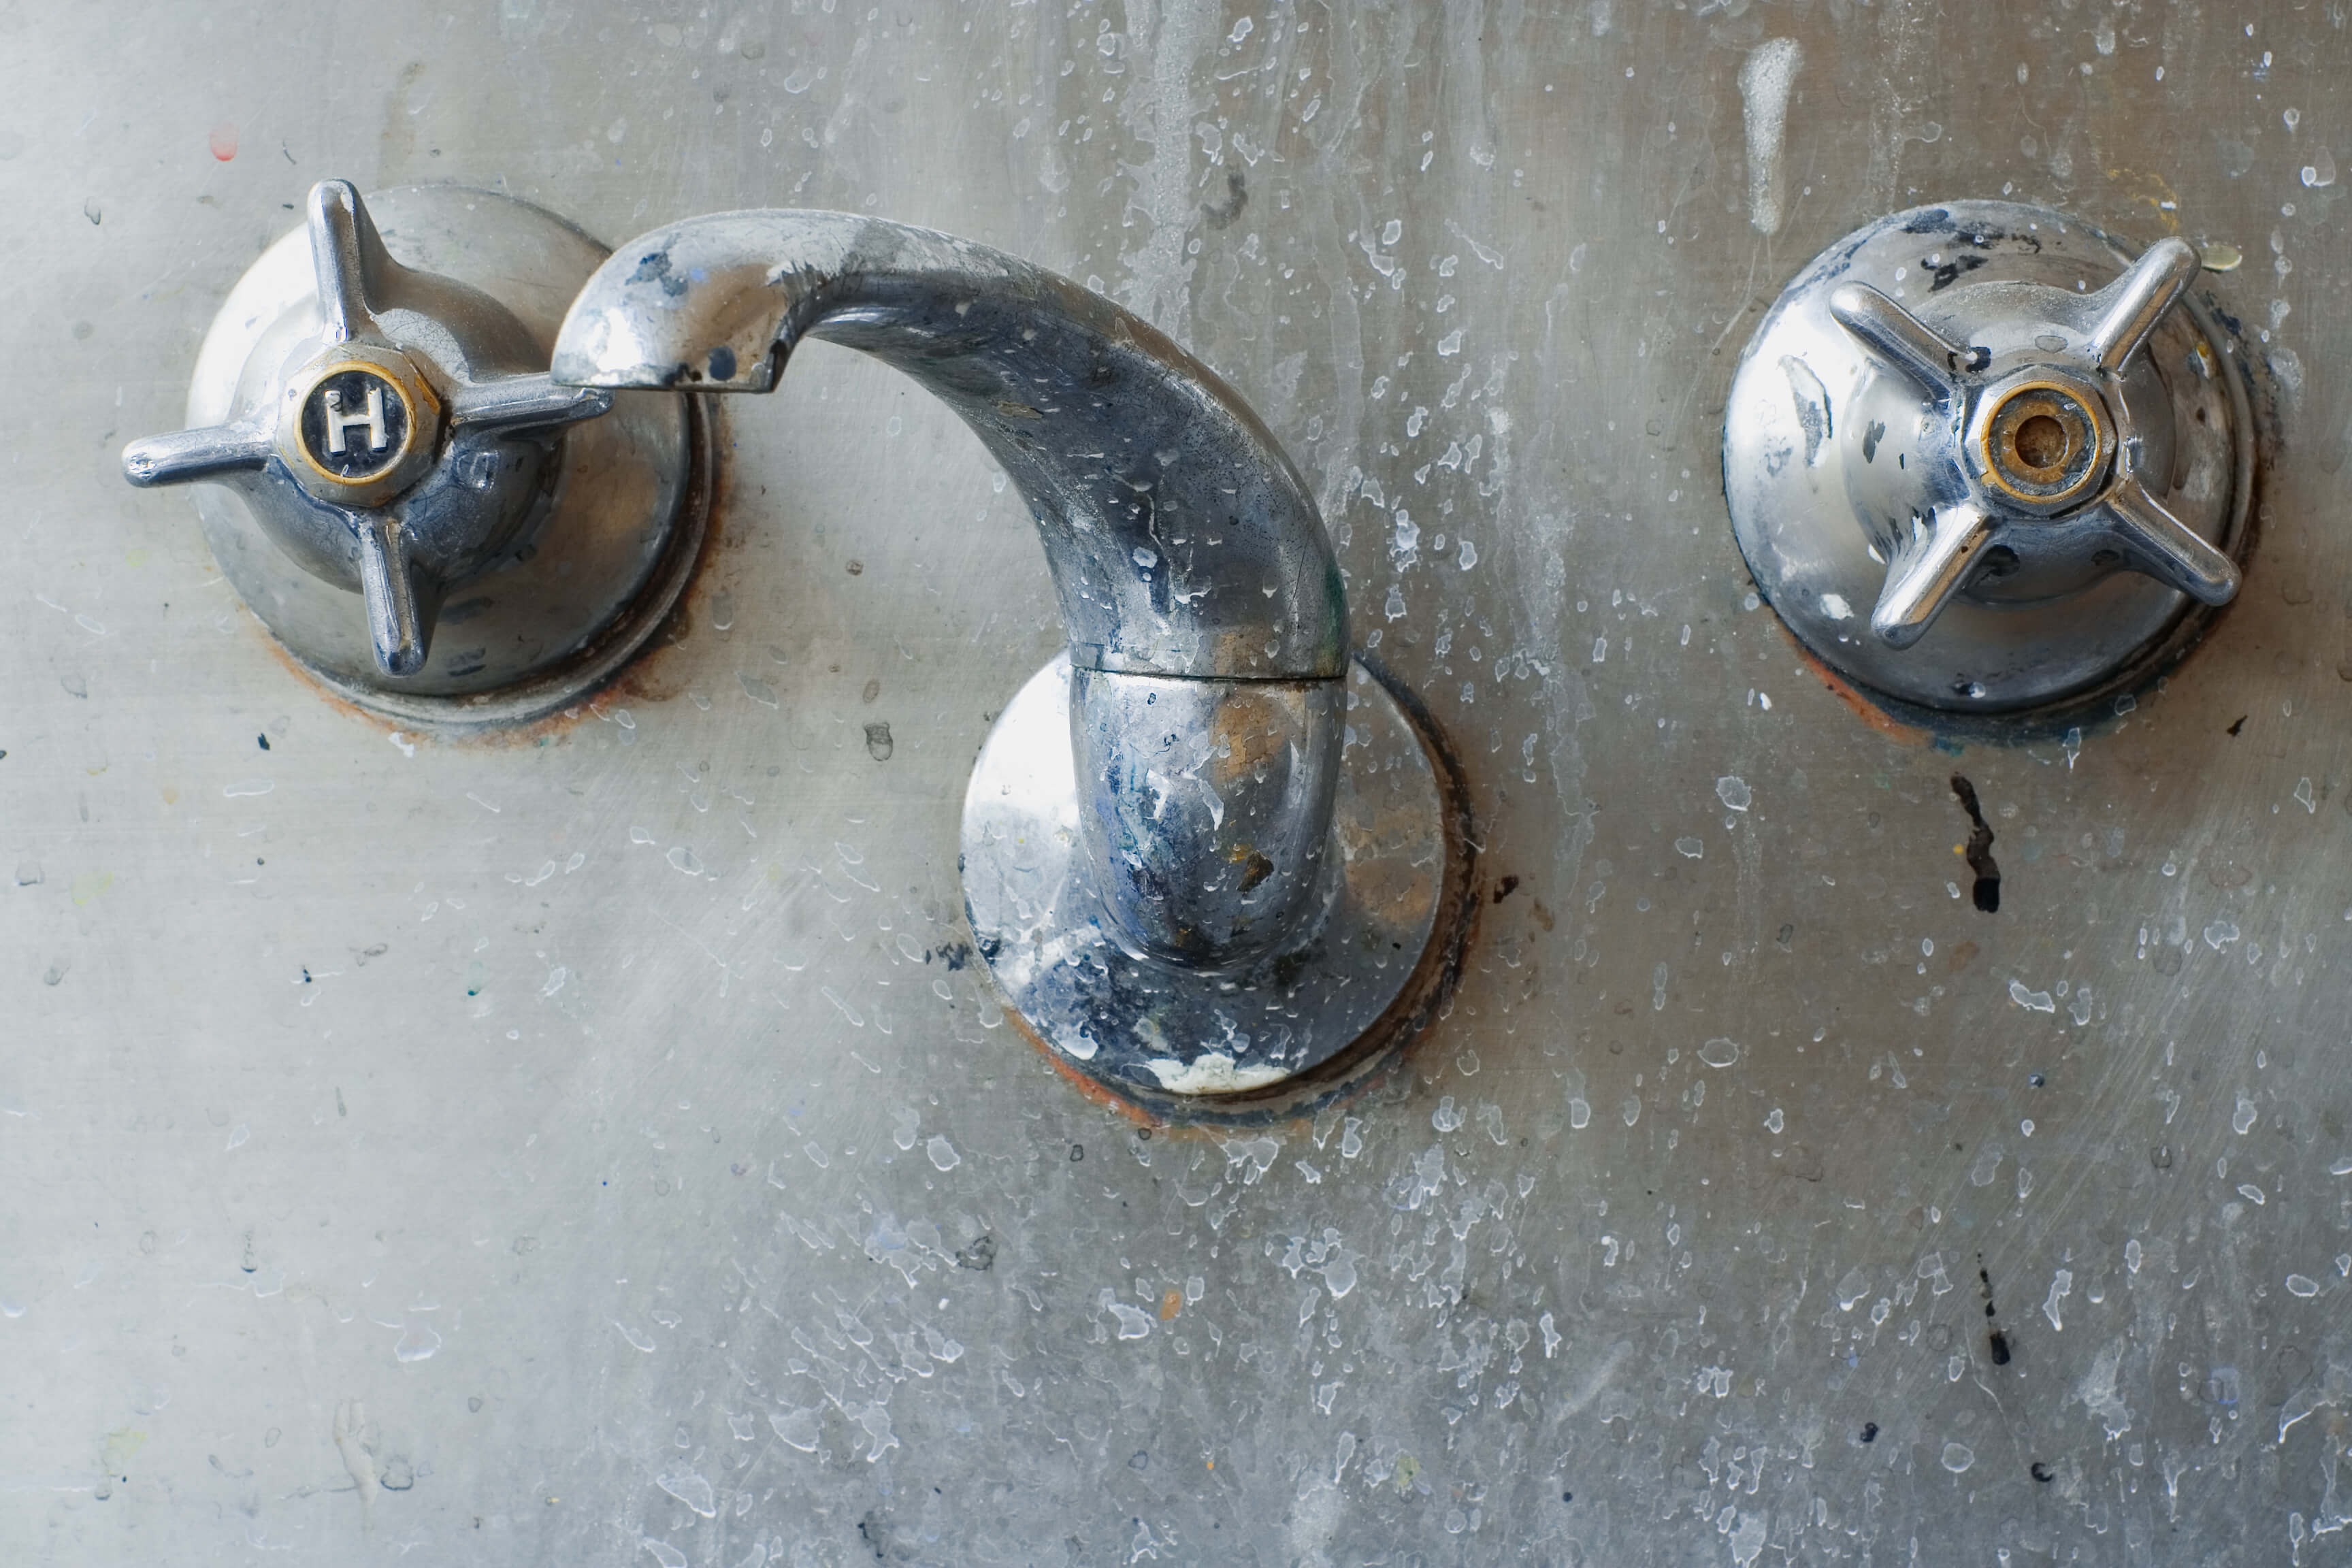 close up of a tap set set in a stainless steel sink or trough. Colorfully grungy and disgusting.